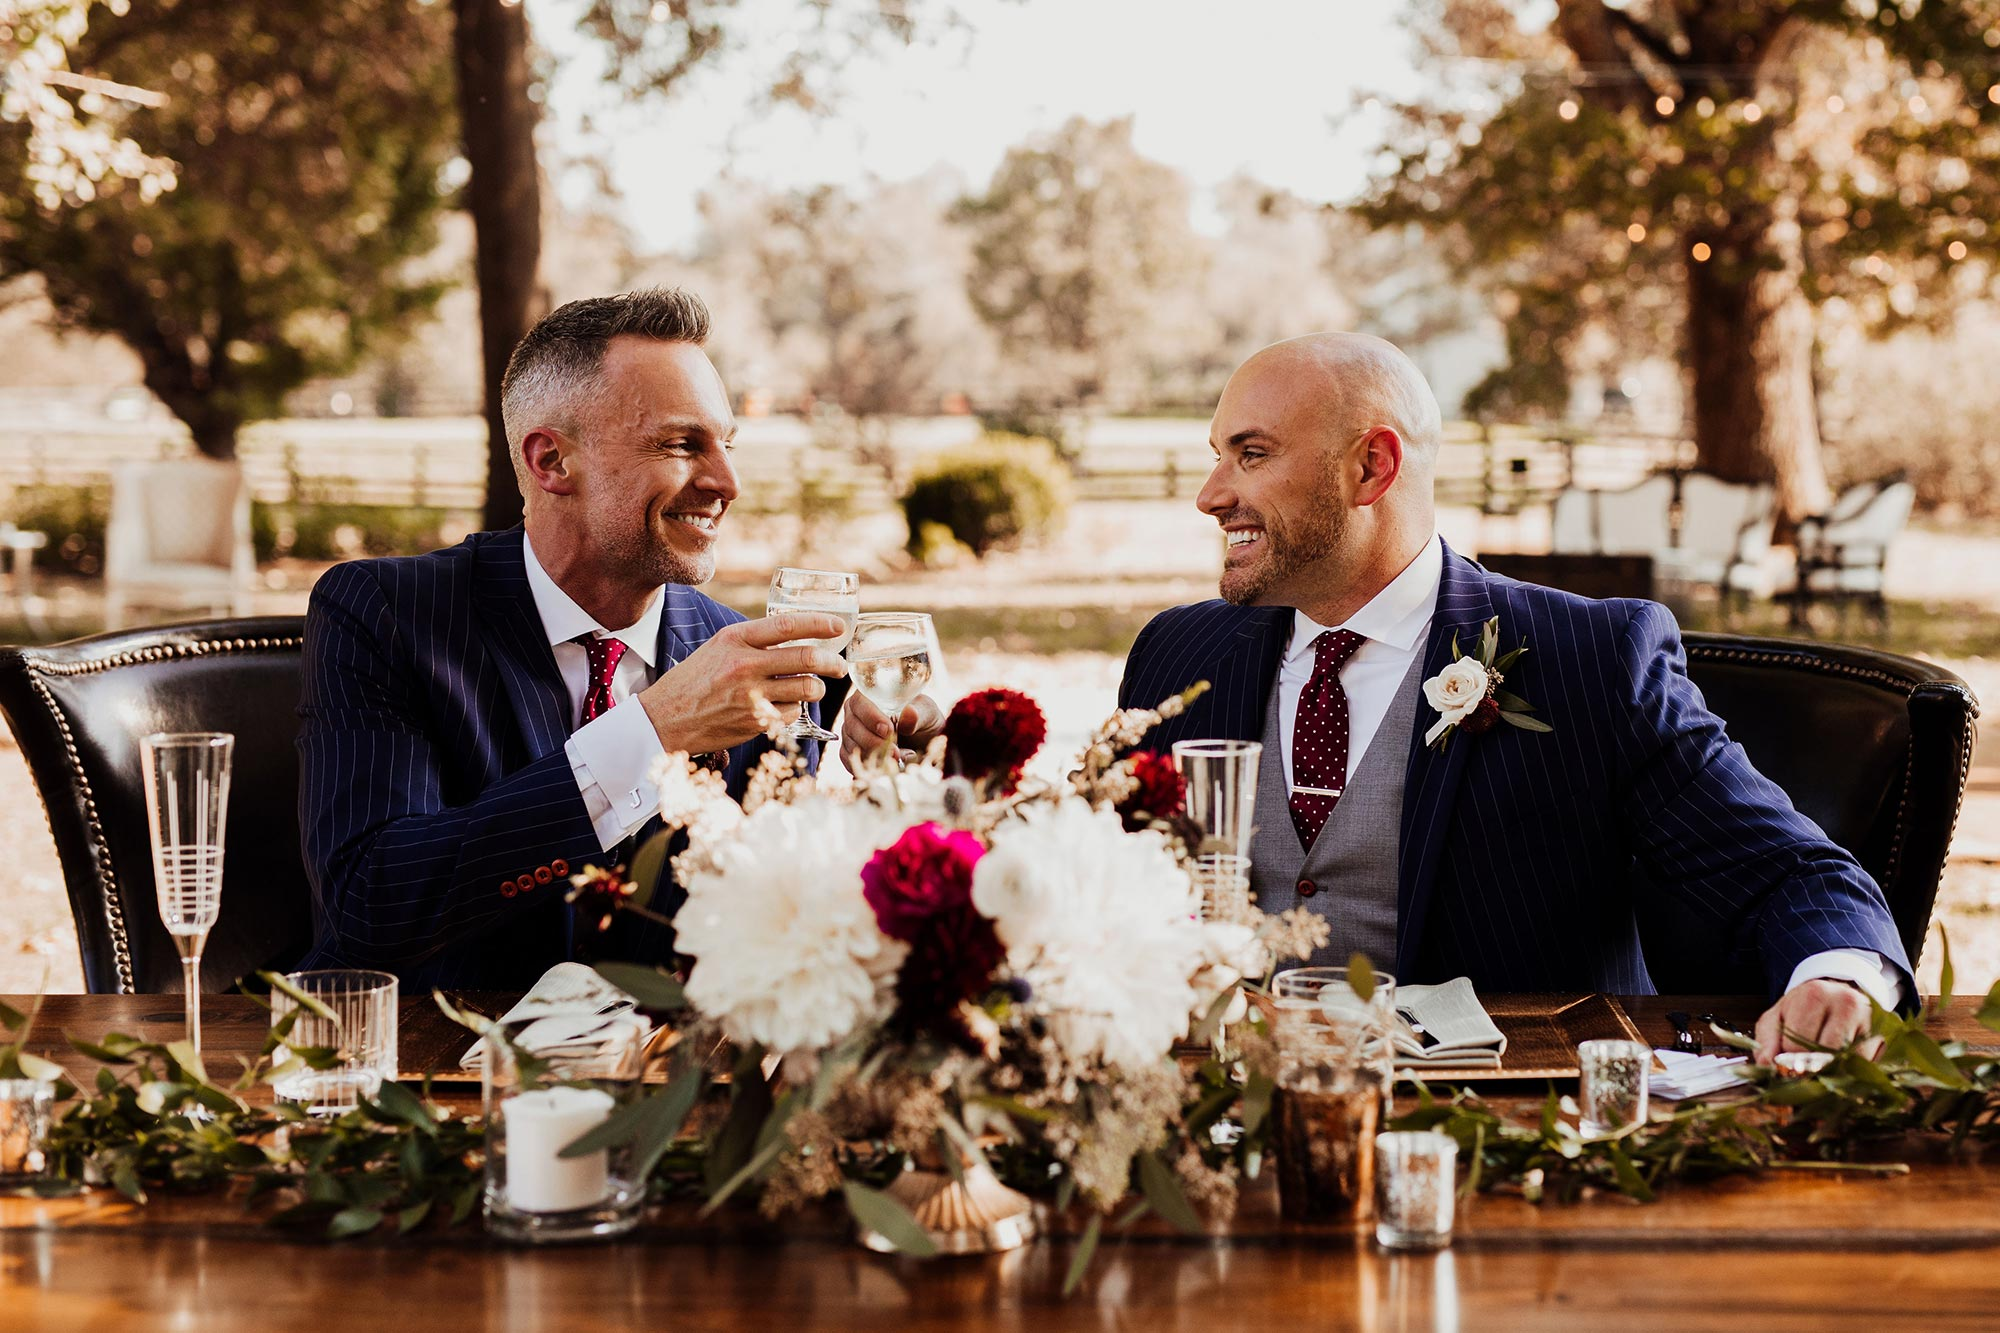 LGBTQ Louisville Kentucky Wedding at Hermitage Farm Crystal Ludwick Photo couple having drink at main table